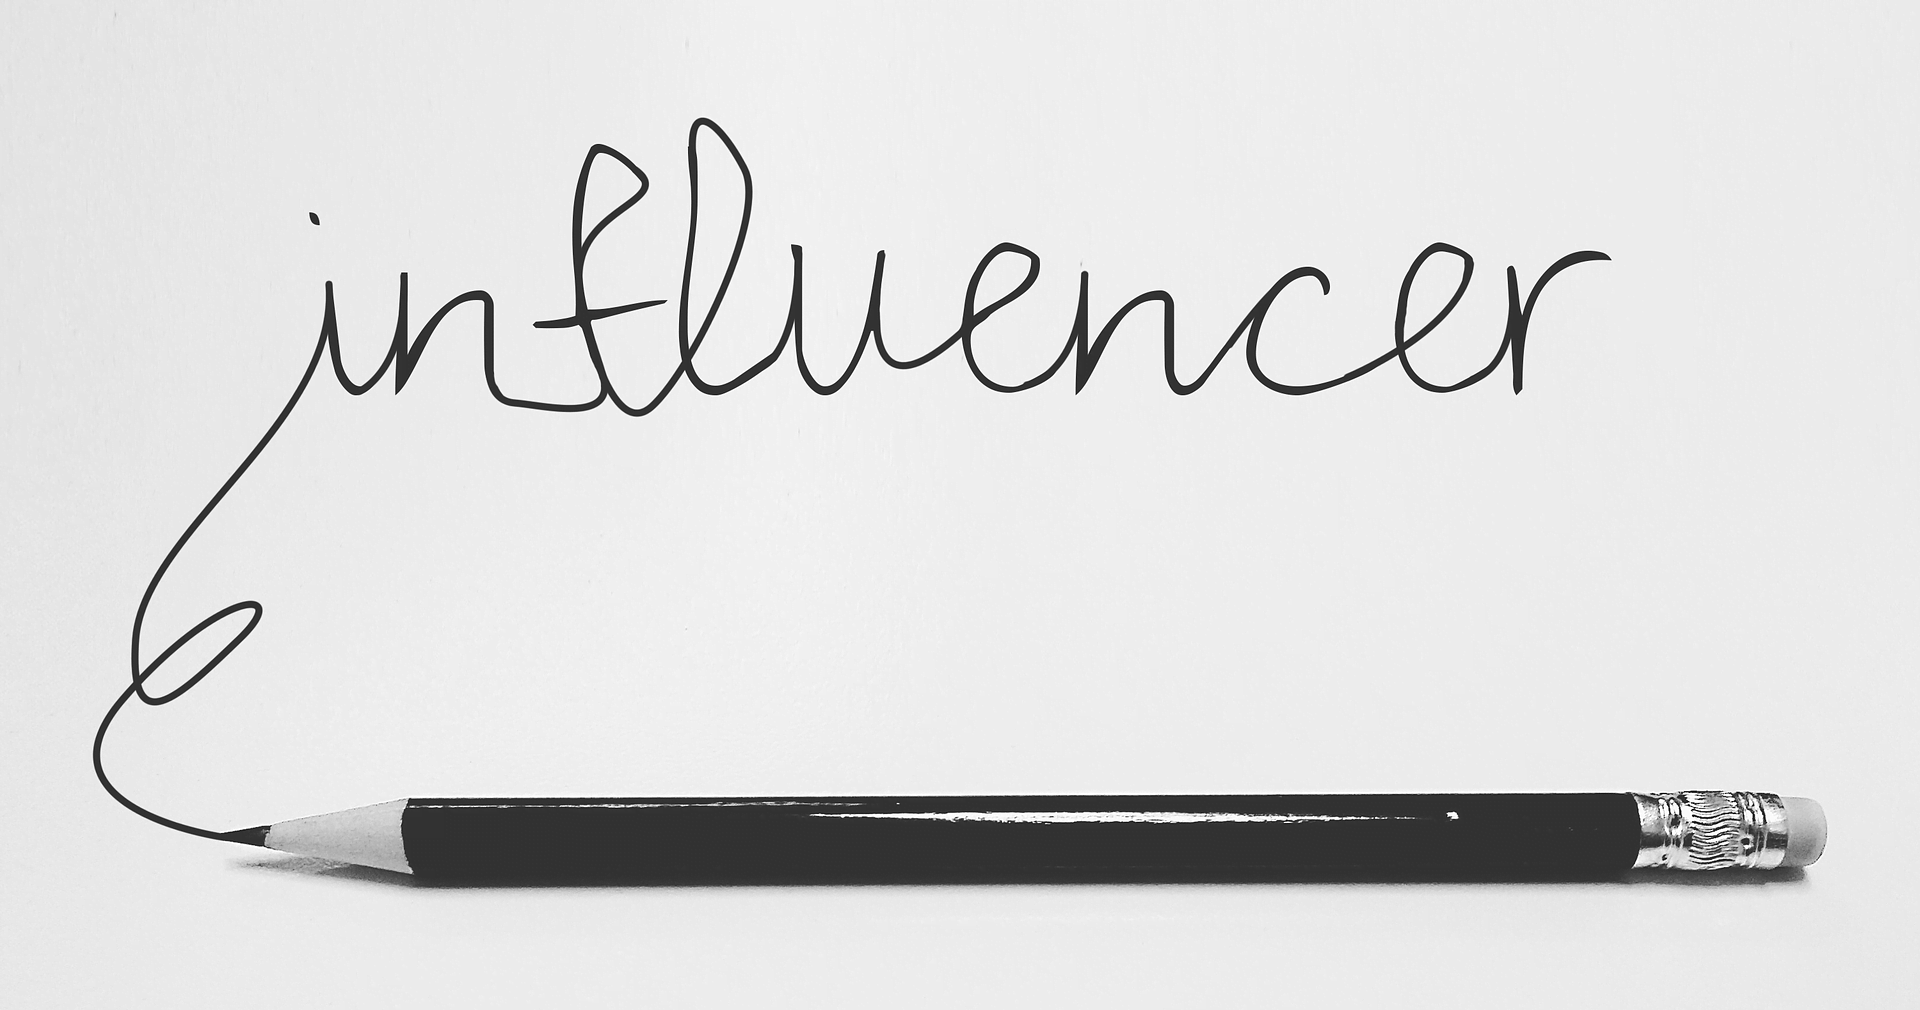 Influencer manuscrito con lápiz coaching